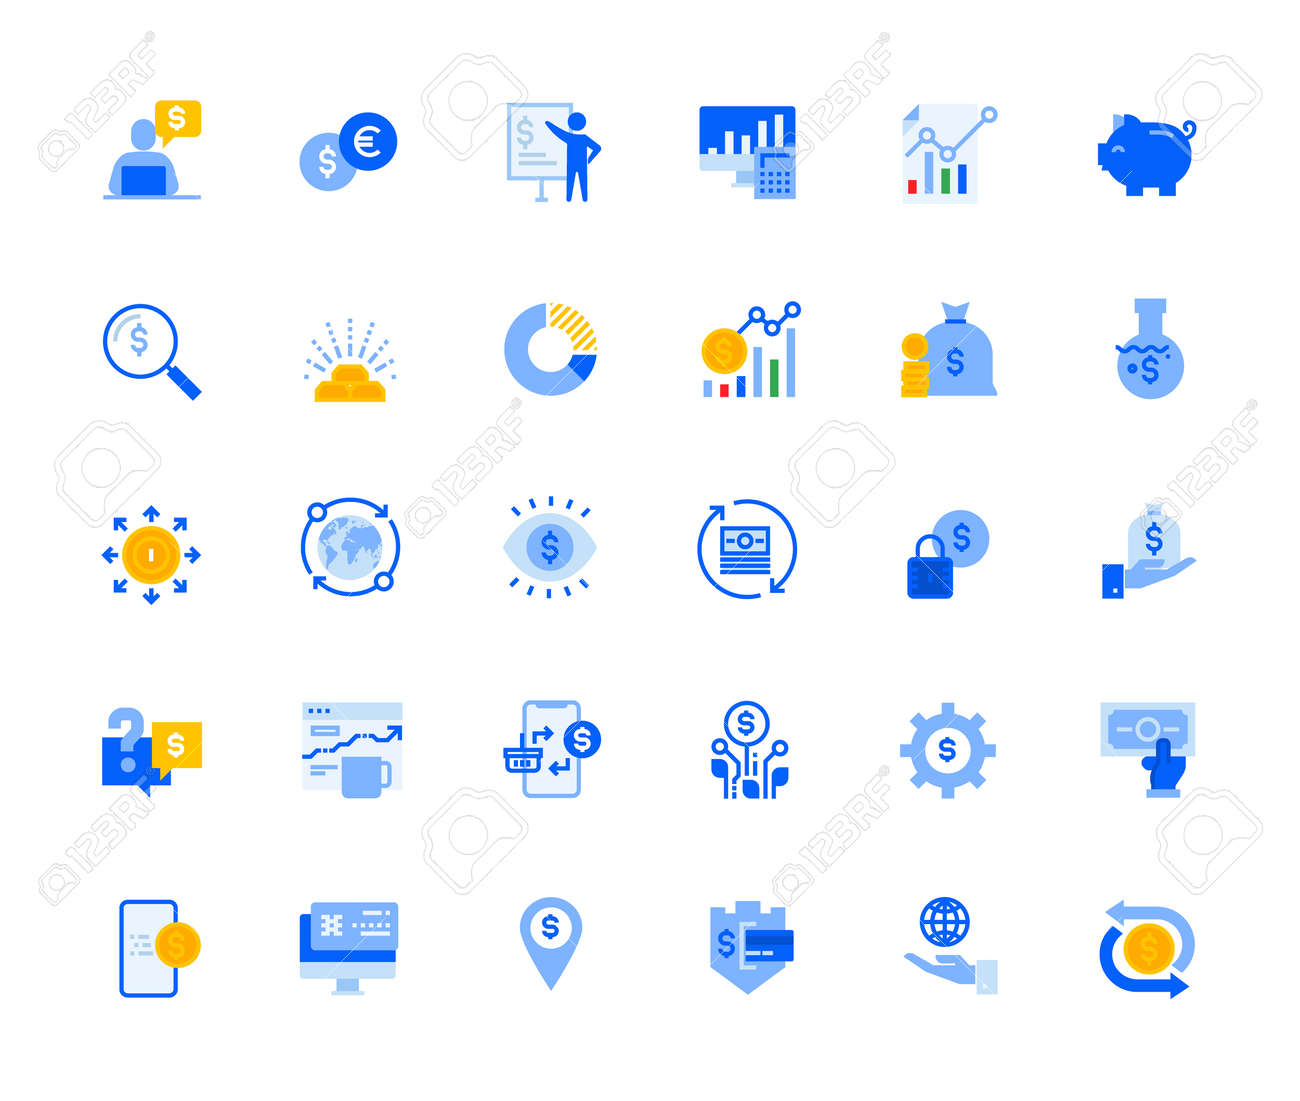 Finance icons set for personal and business use. Vector illustration icons for graphic and web design, app development, marketing material and business presentation. - 167494326